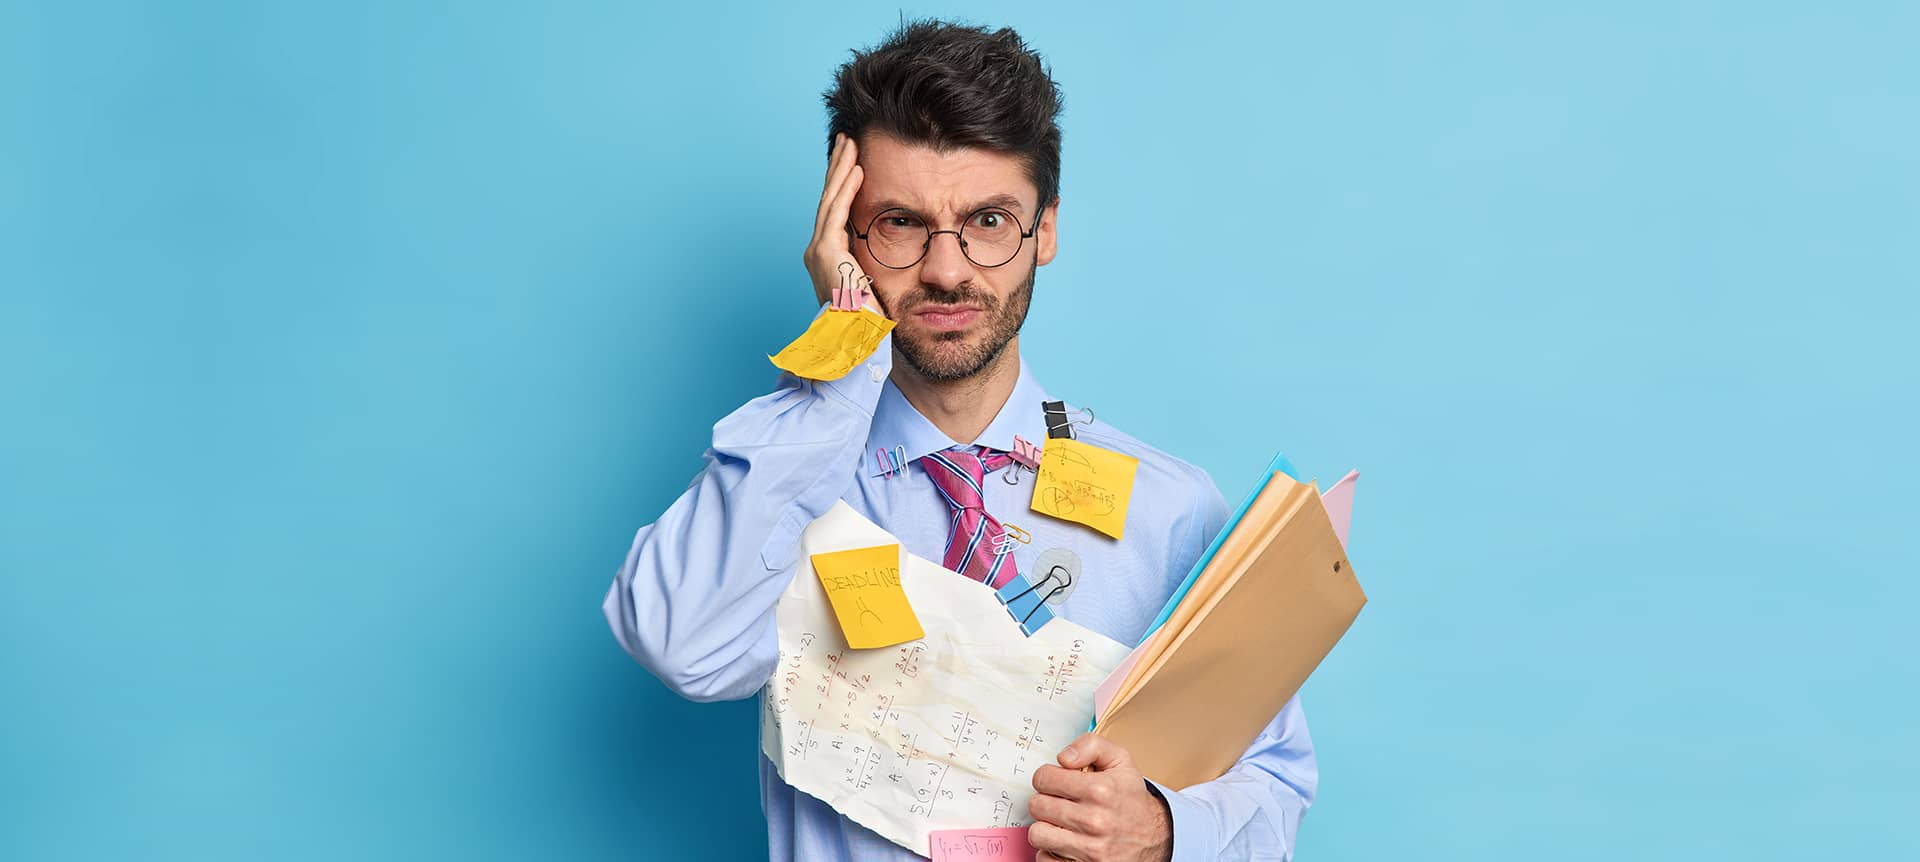 A male candidate with sticky notes all over him, looking unprepared for an interview.